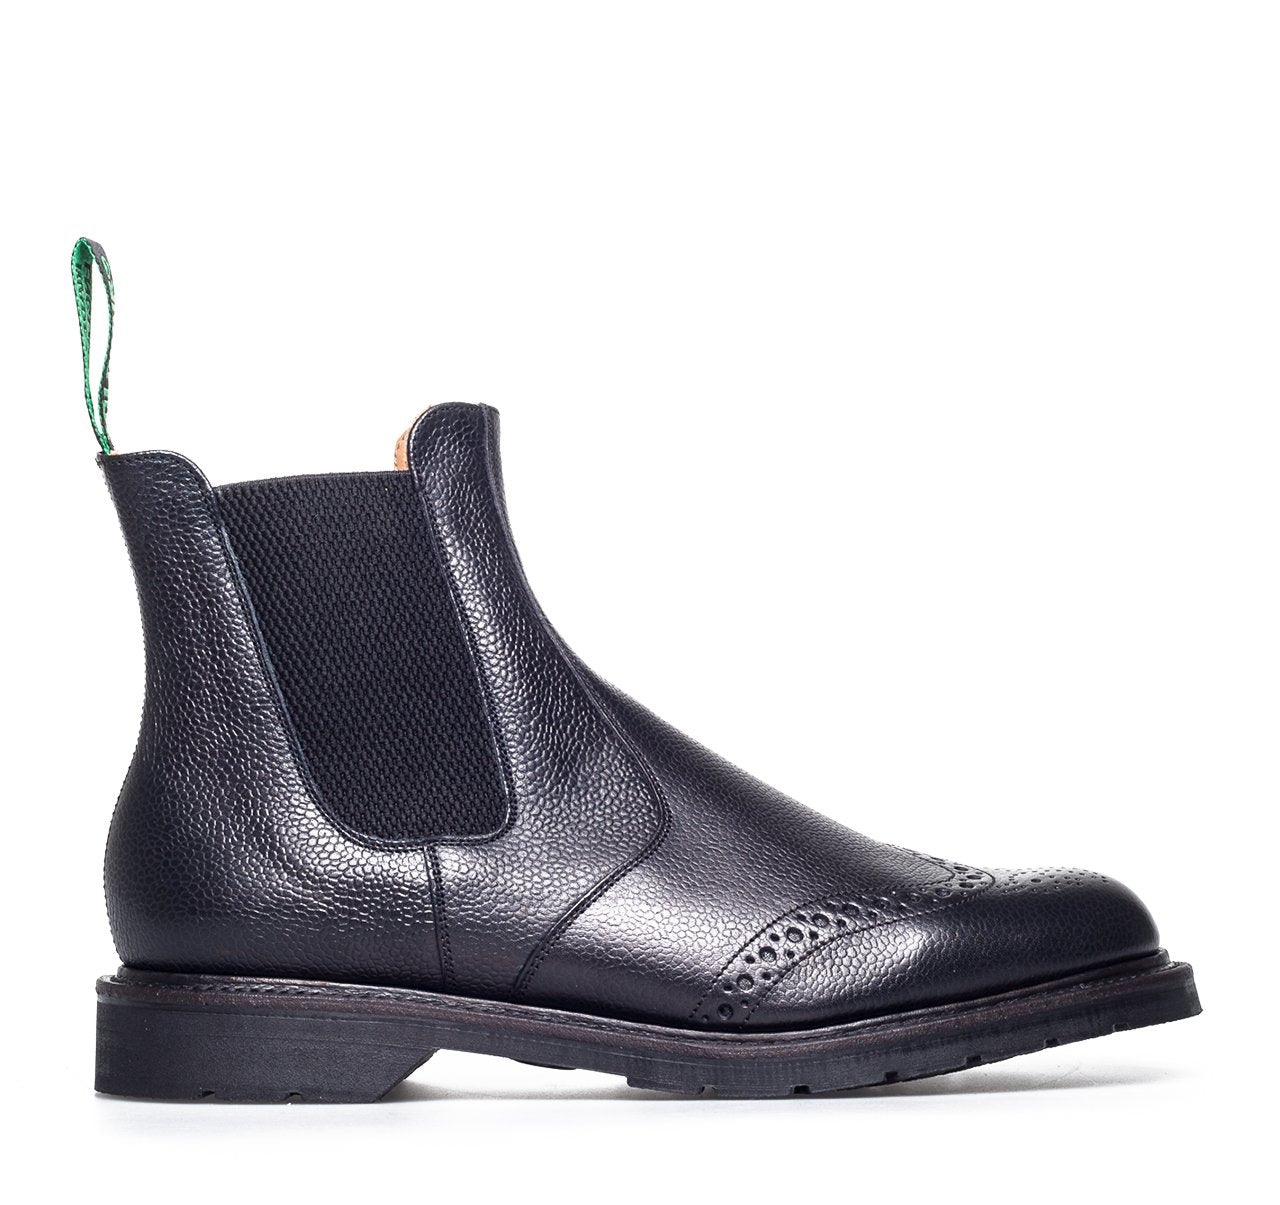 Solovair Dealer Brogue Boots - Black Grain